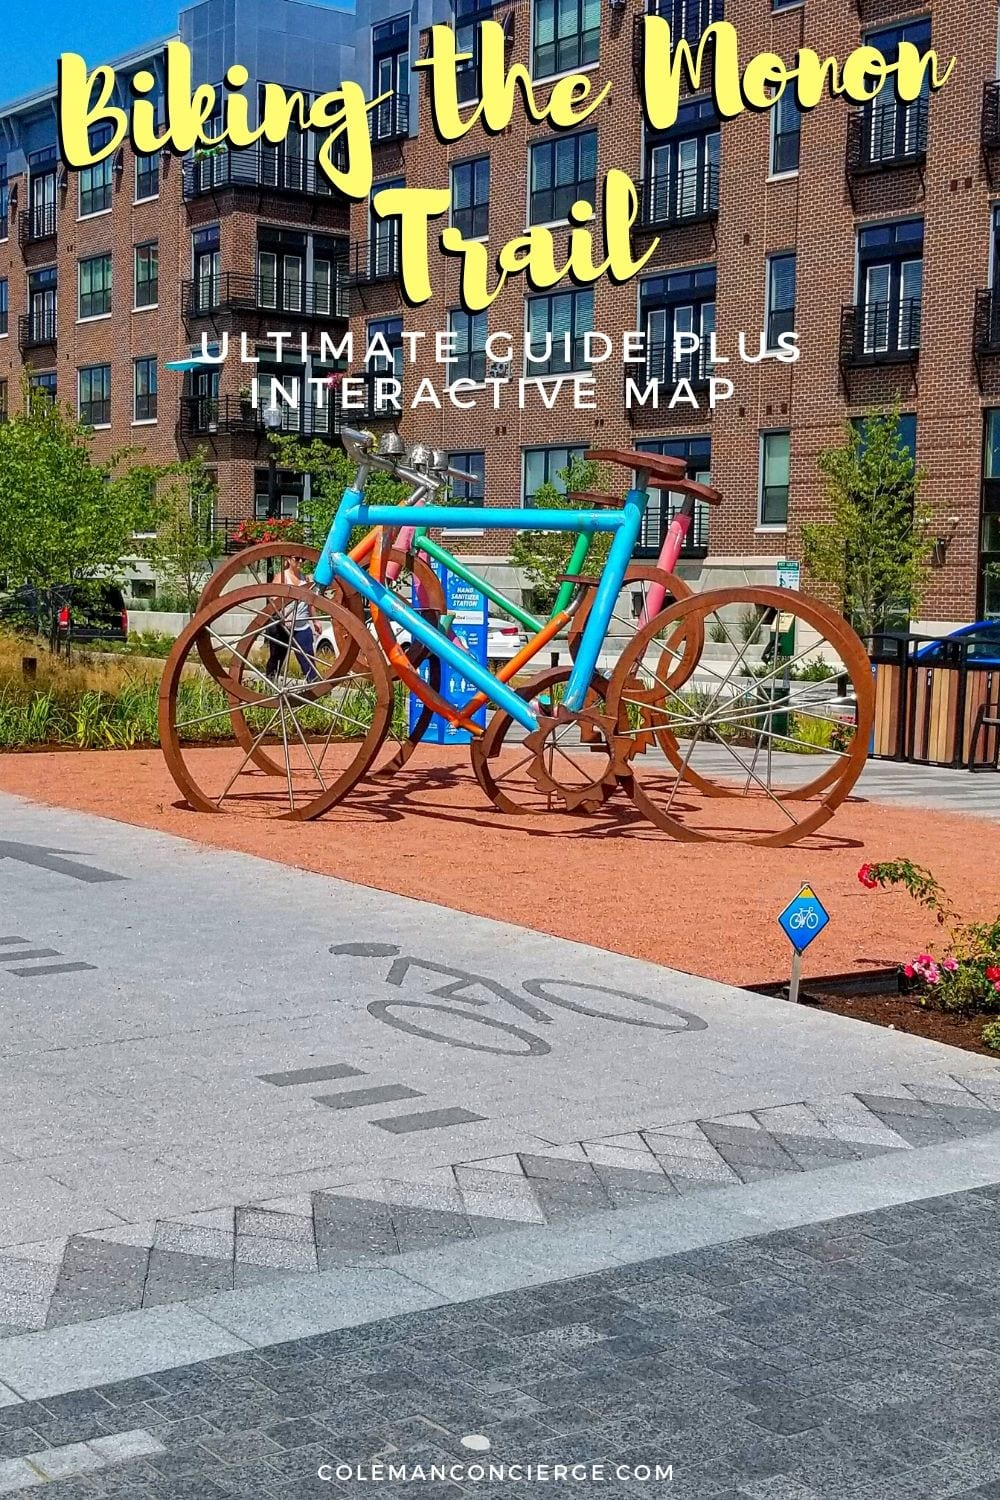 Bike sculpture on Monon Trail in Carmel Indiana